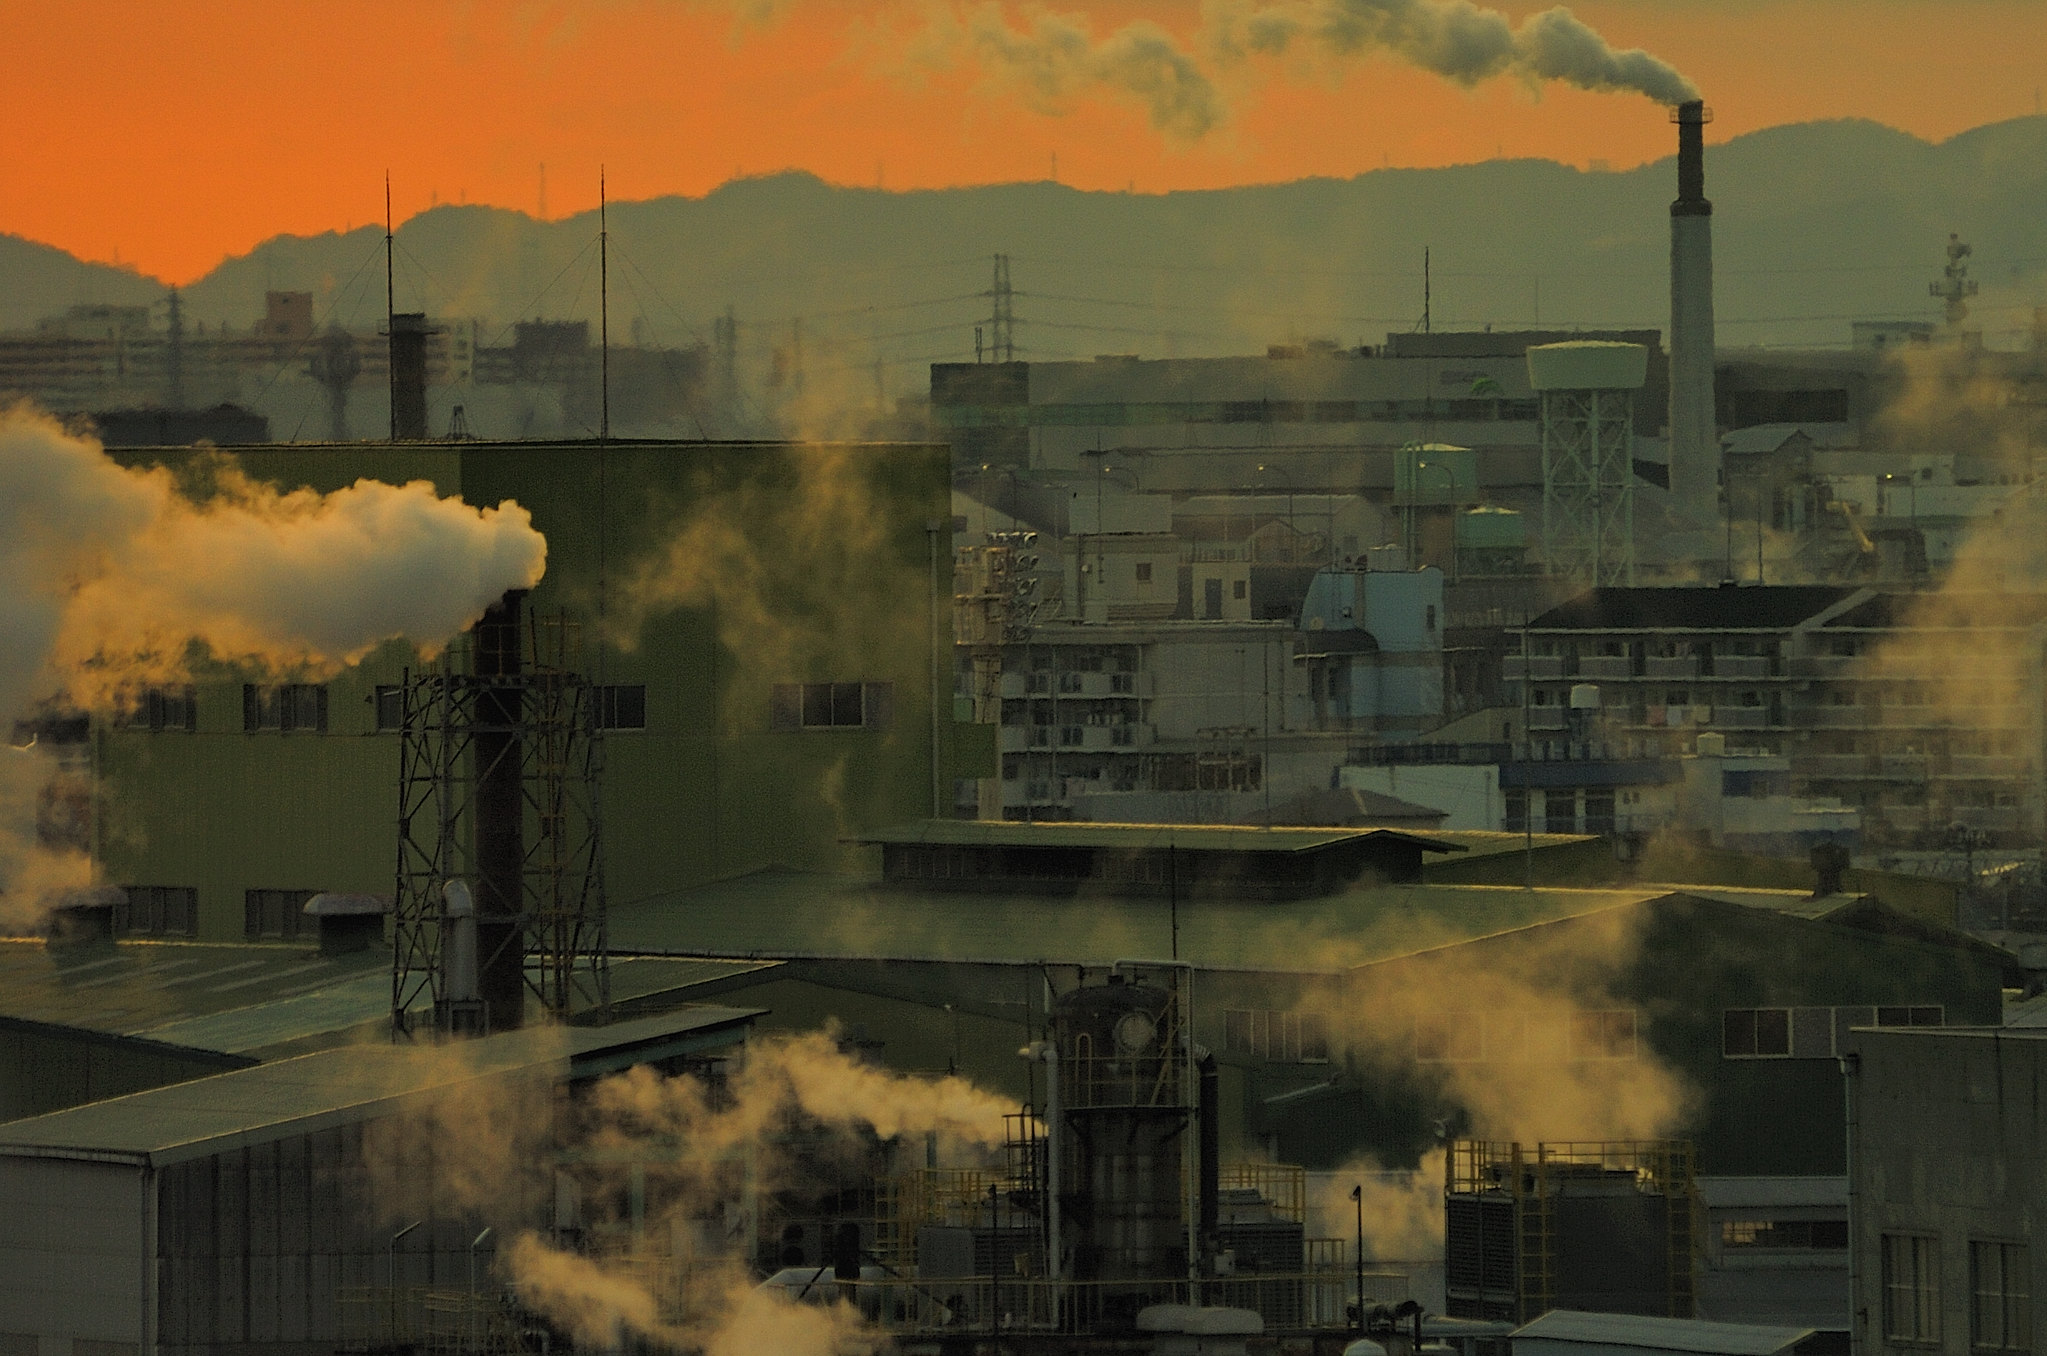 <p>Some emergency measures to address COVID-19 and its impact on communities are linked to negative effects on the climate, including worsening air pollution. Photo credit to Shinobu Sugiyama/Flickr.</p>